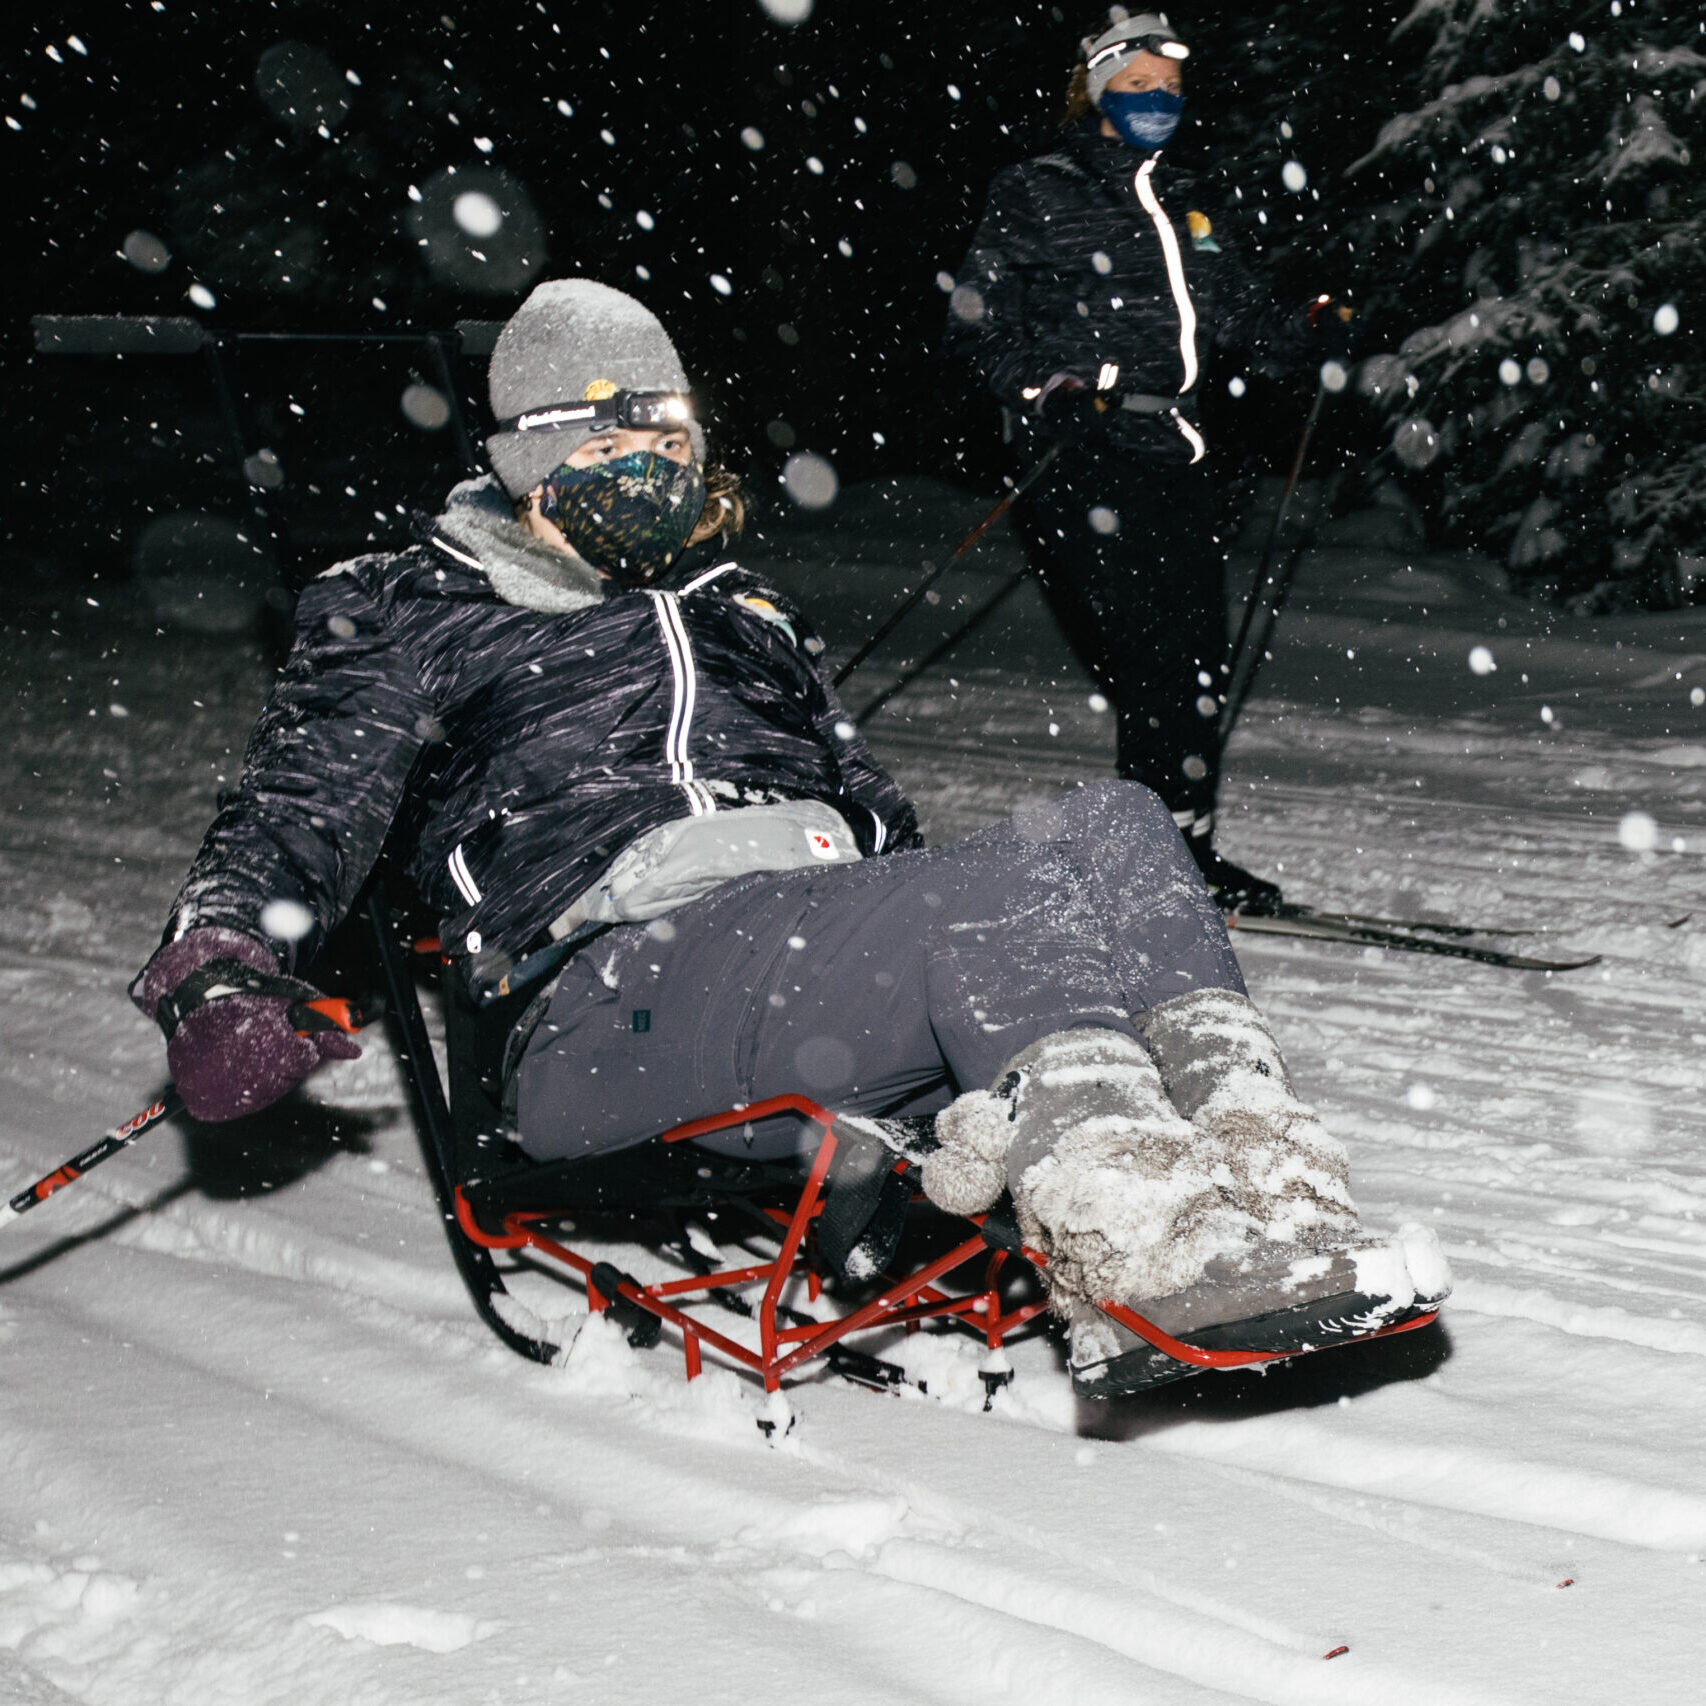 A woman using s nordic sit-ski at night during a snowstorm at night.